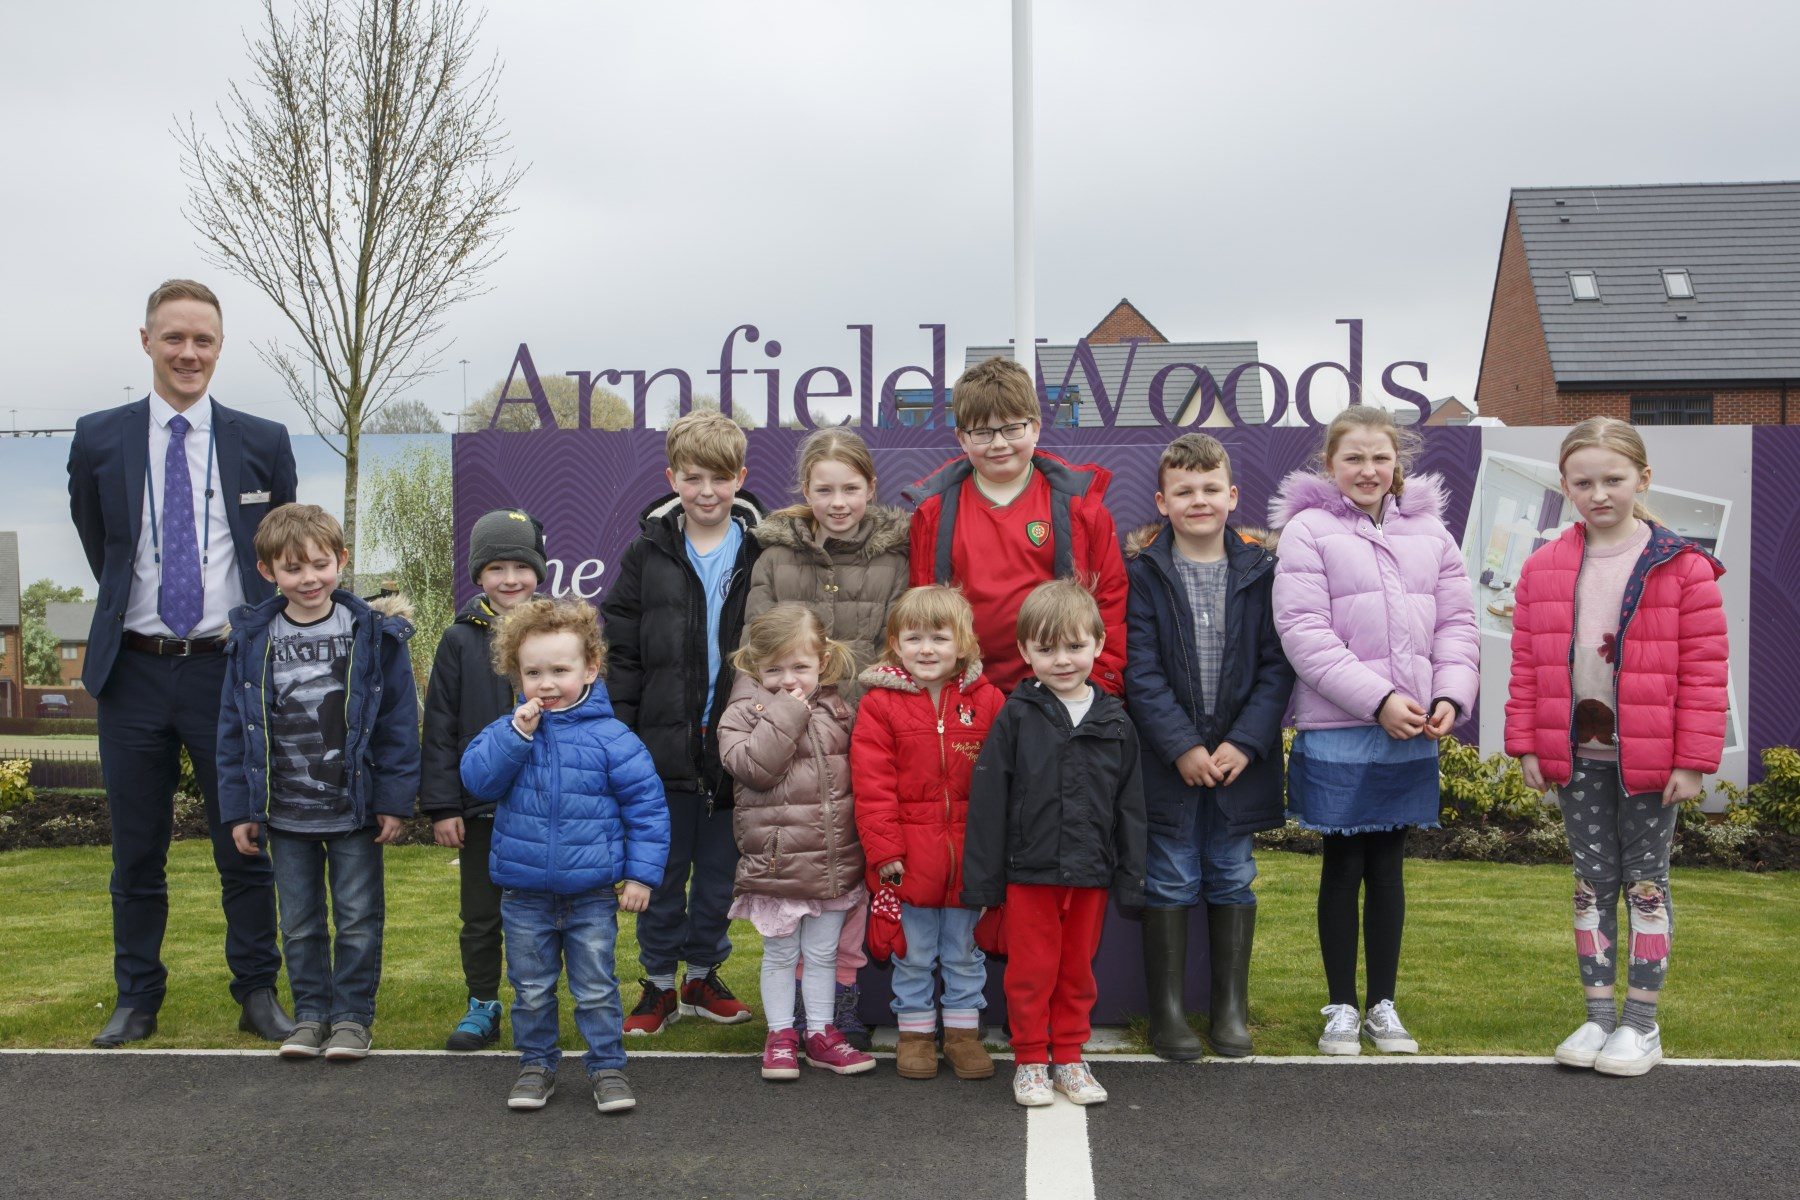 Children from the nursery and out of school club were invited to the Arnfield Woods development to d